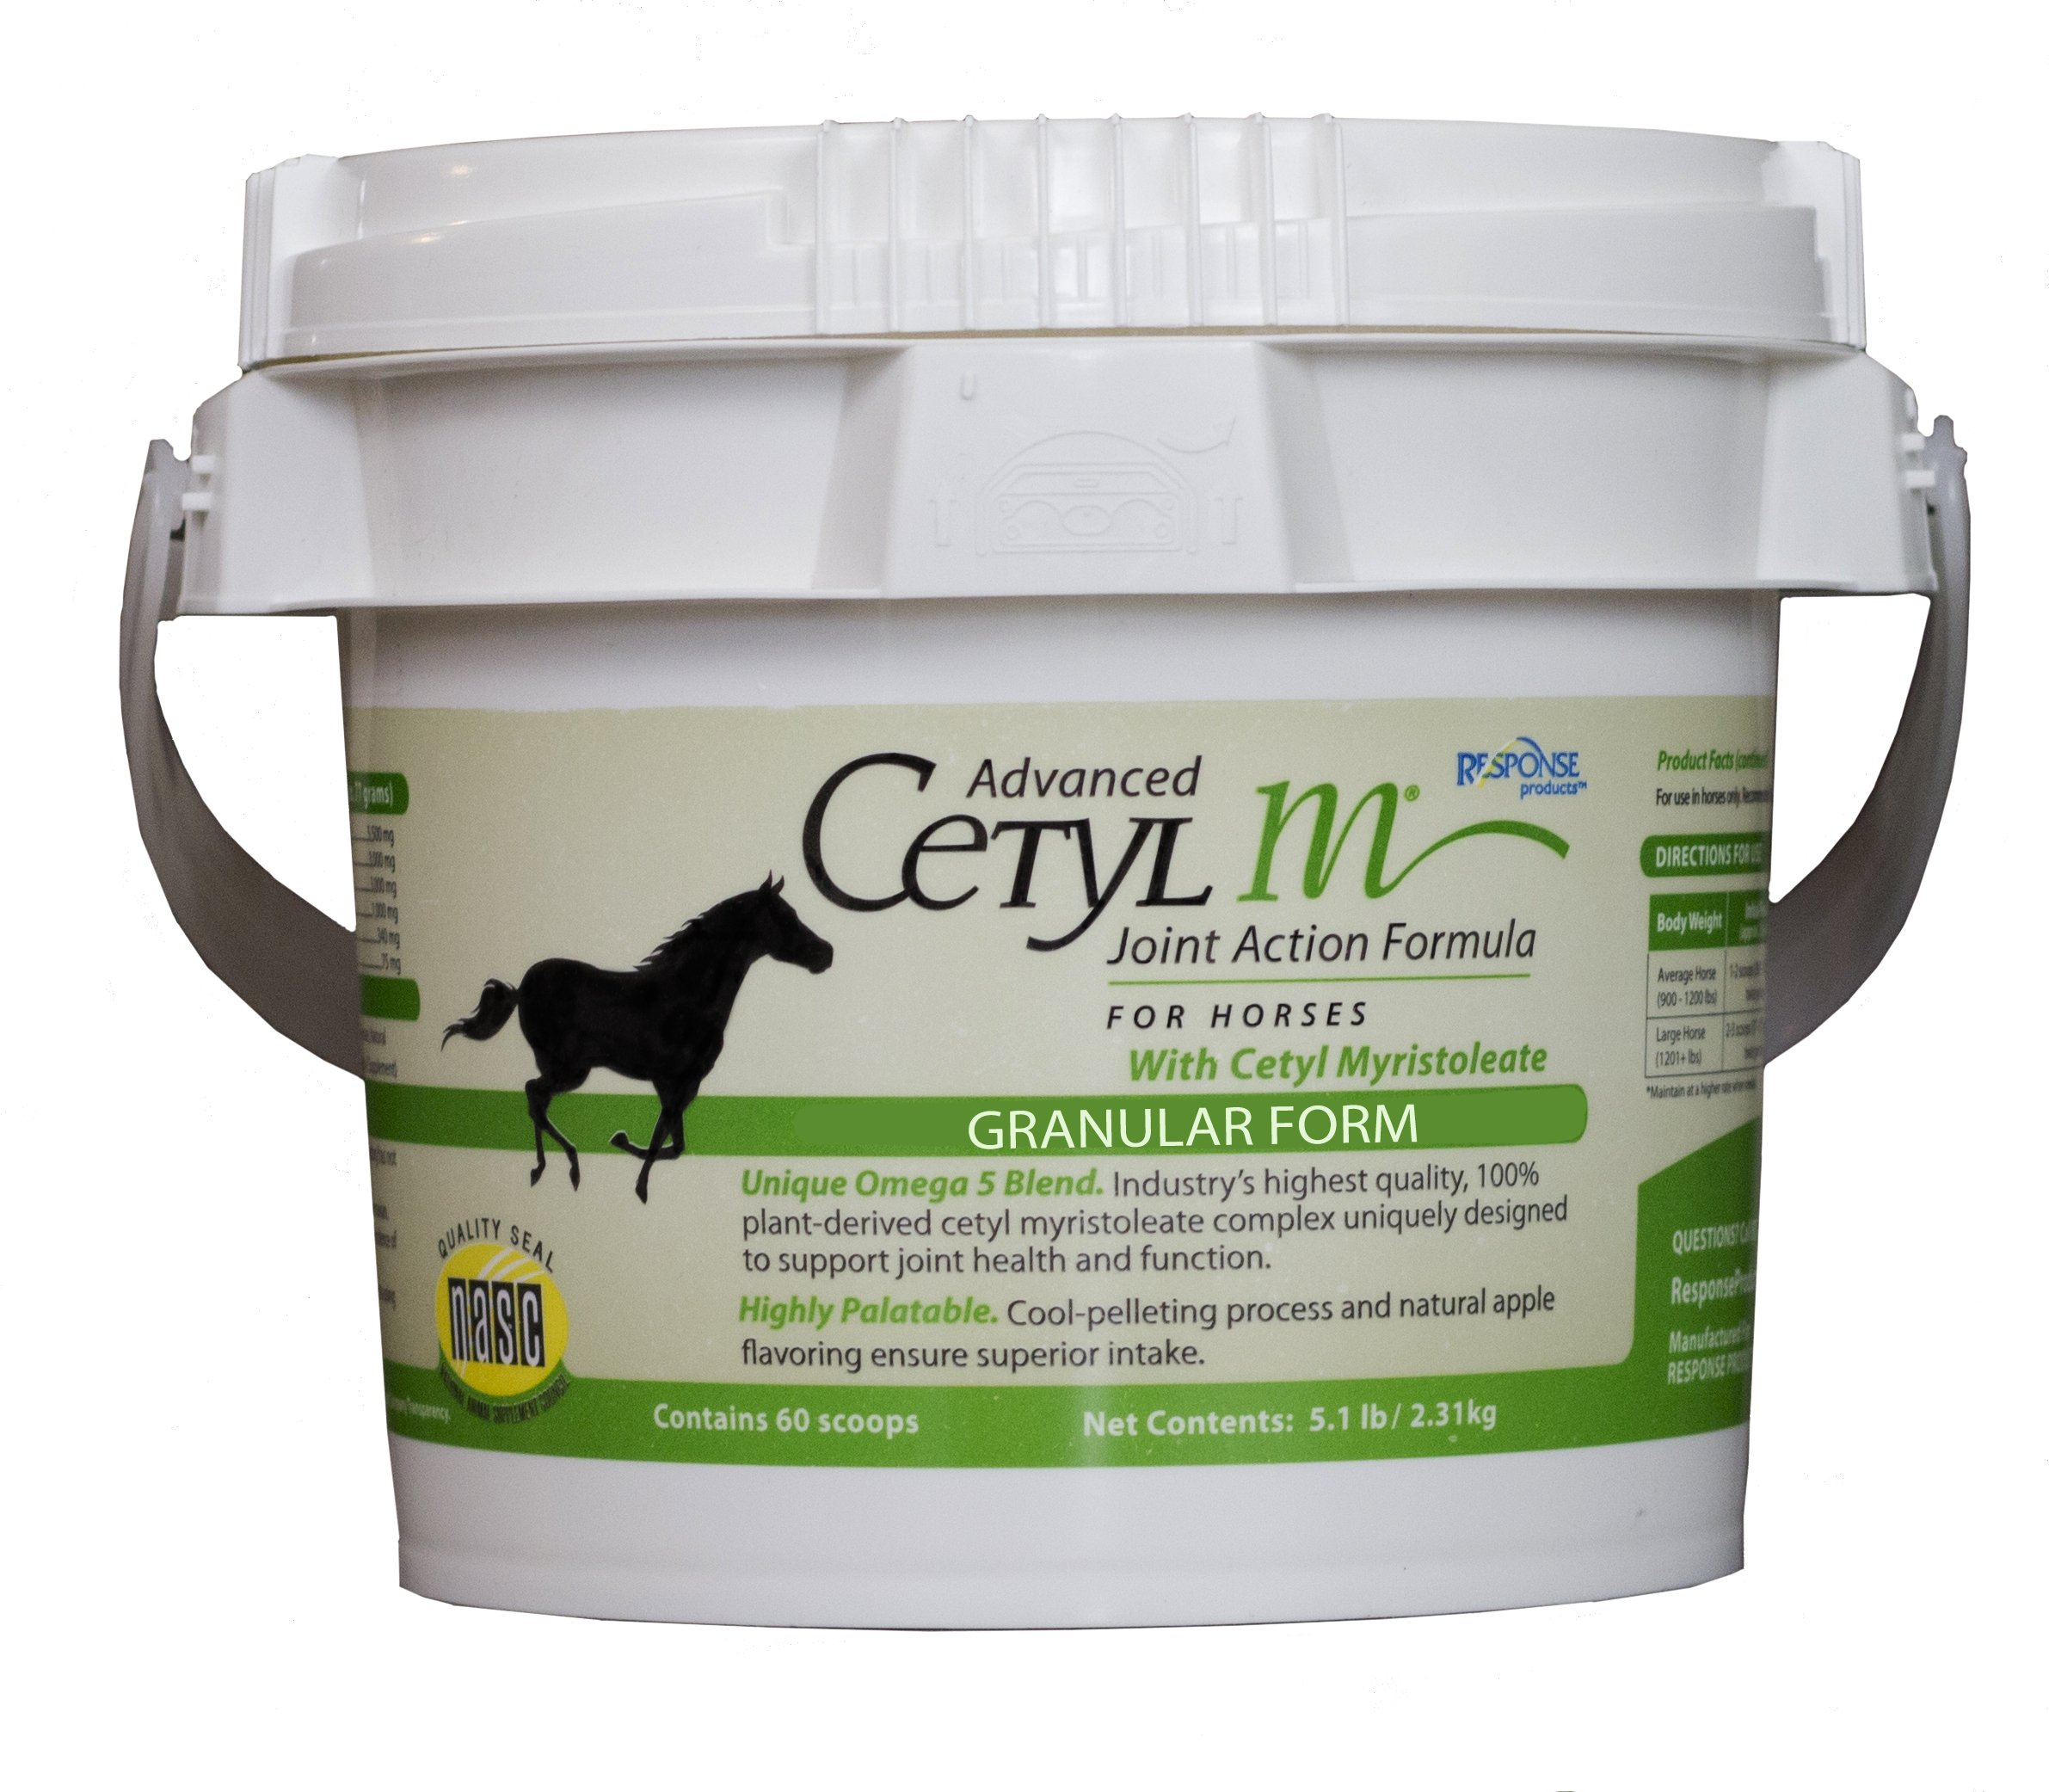 Cetyl-M Joint Action Formula for Horses (5.1 lbs)